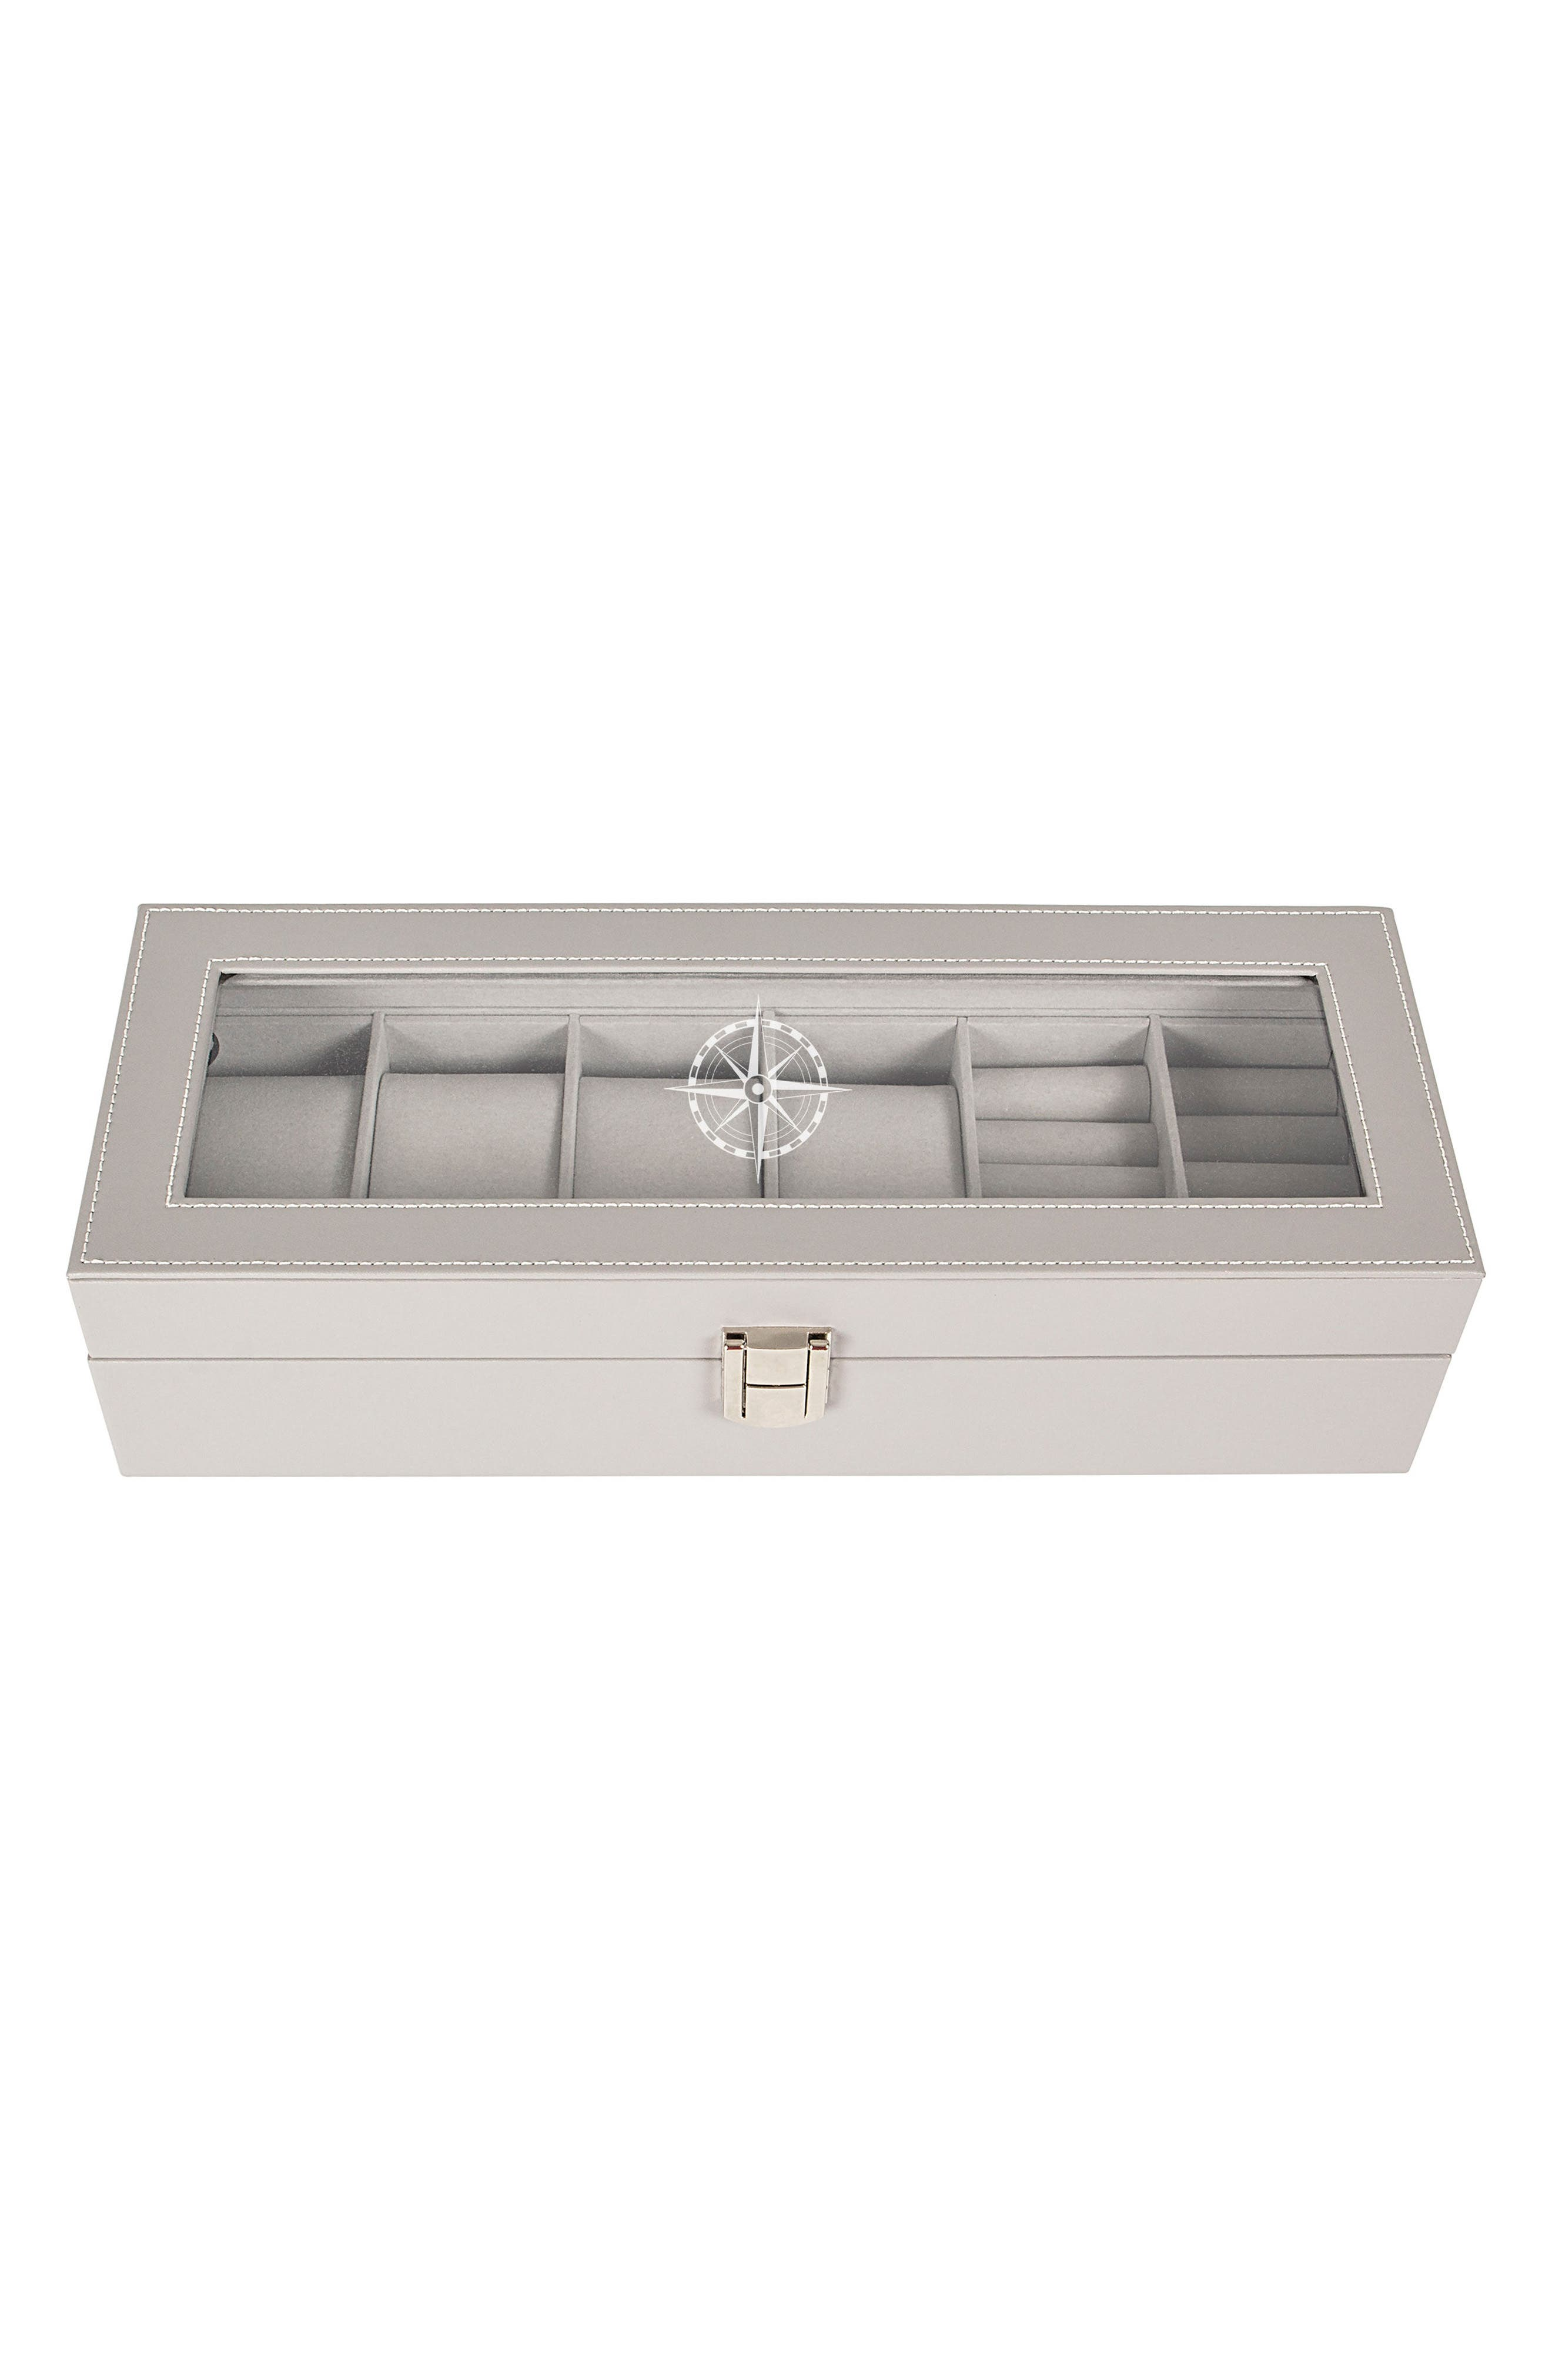 Compass Watch & Jewelry Case,                             Main thumbnail 1, color,                             020